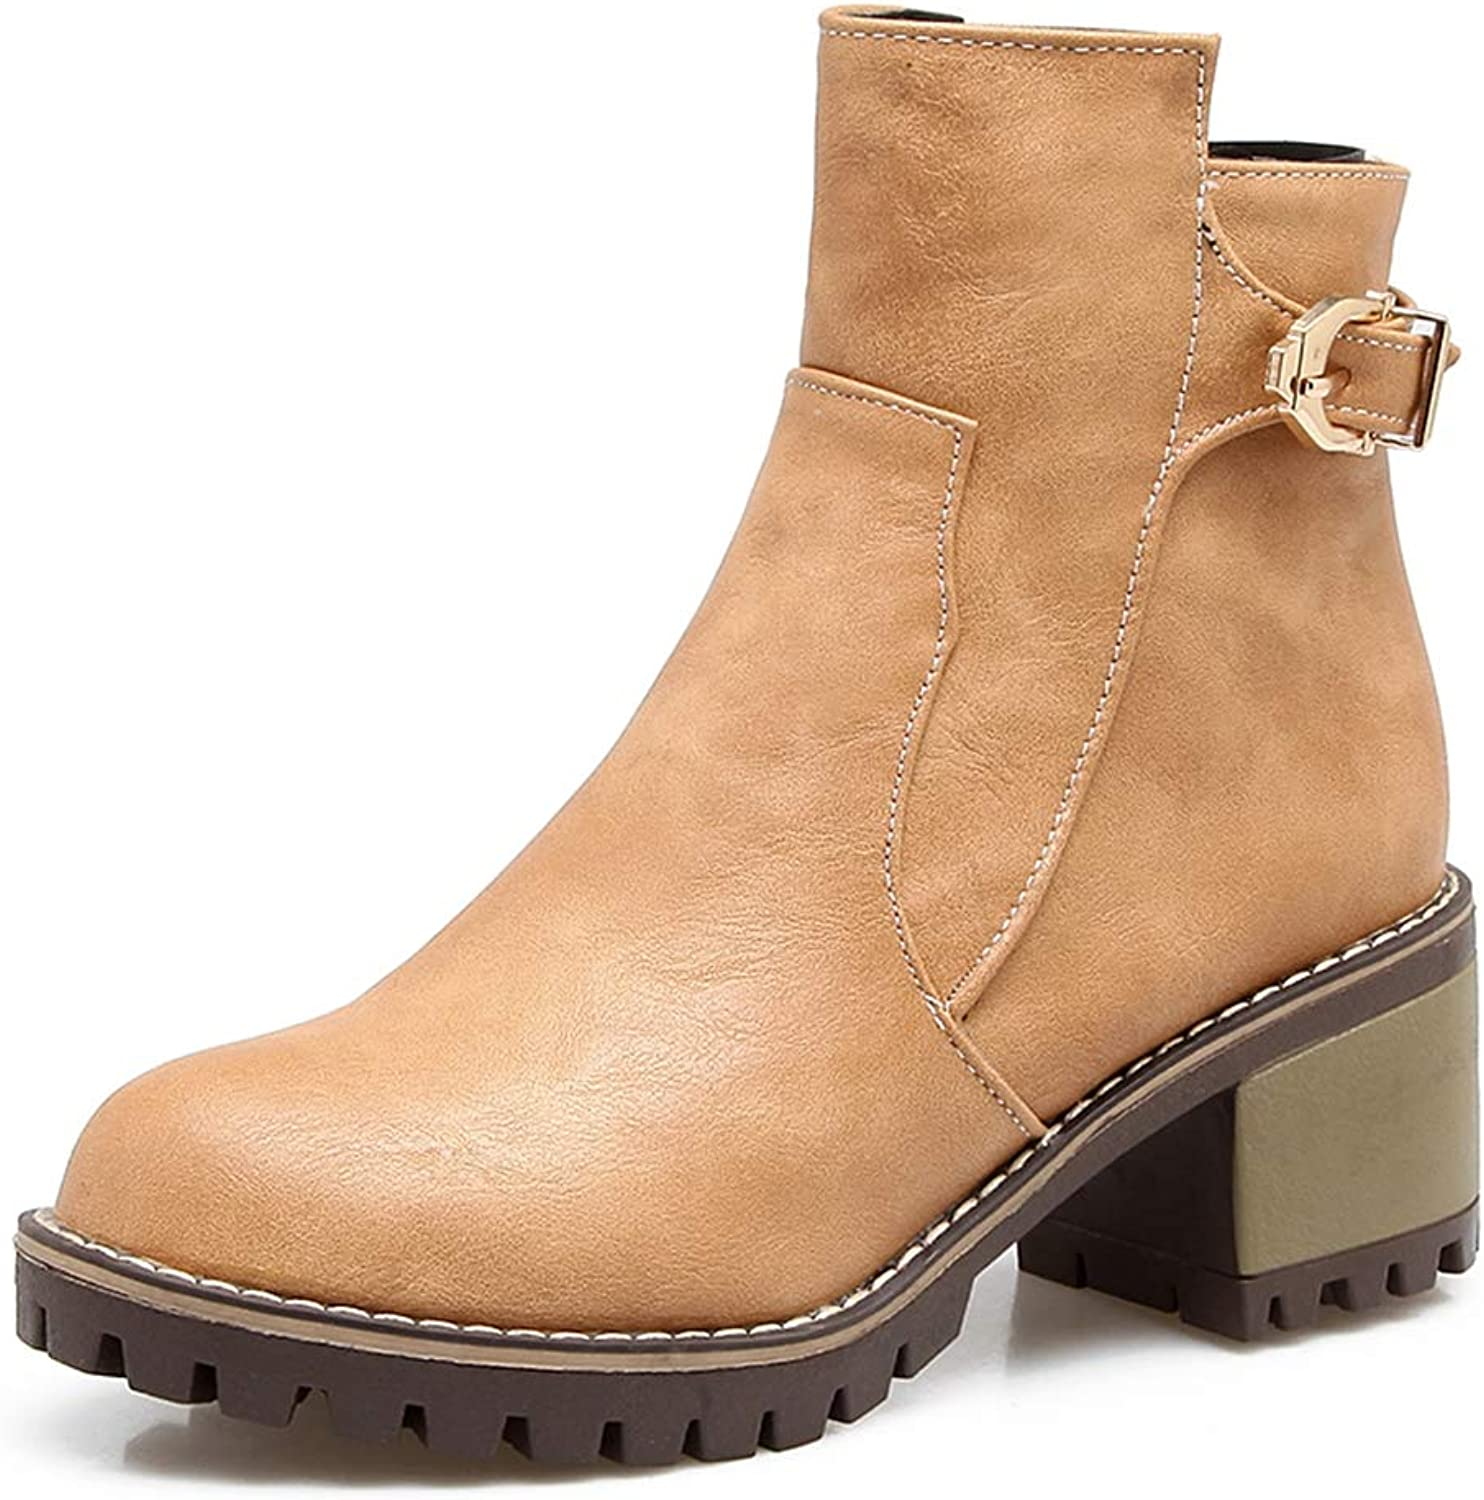 Btrada Women Retro Short Boots Chunky Square Heels Winter shoes Side Zipper Ankle Boots Non-Slip Booties